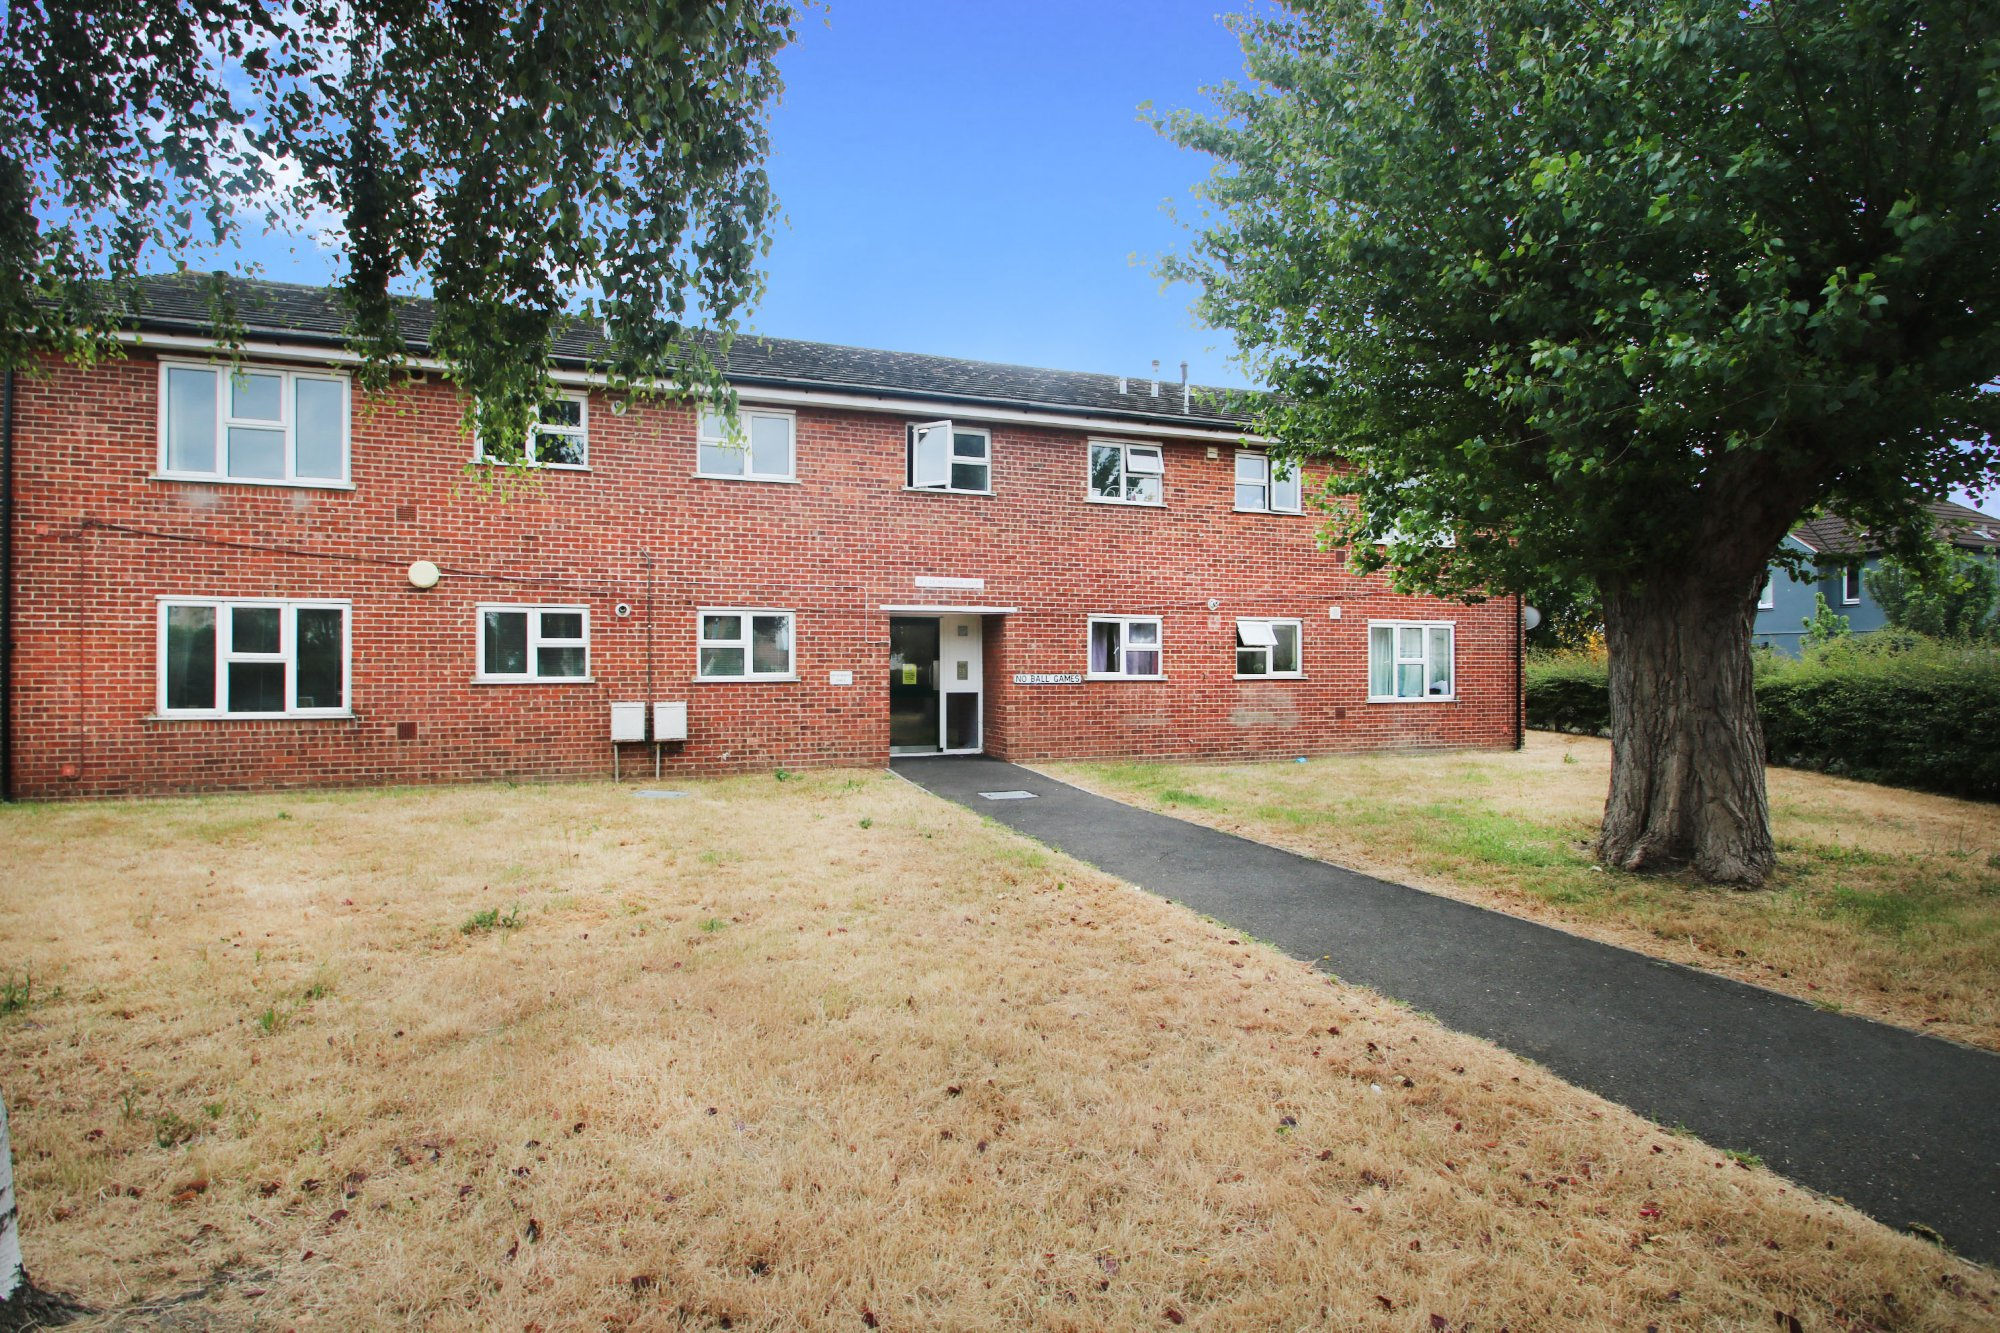 Milbourne Court, Middle Mead, Rochford